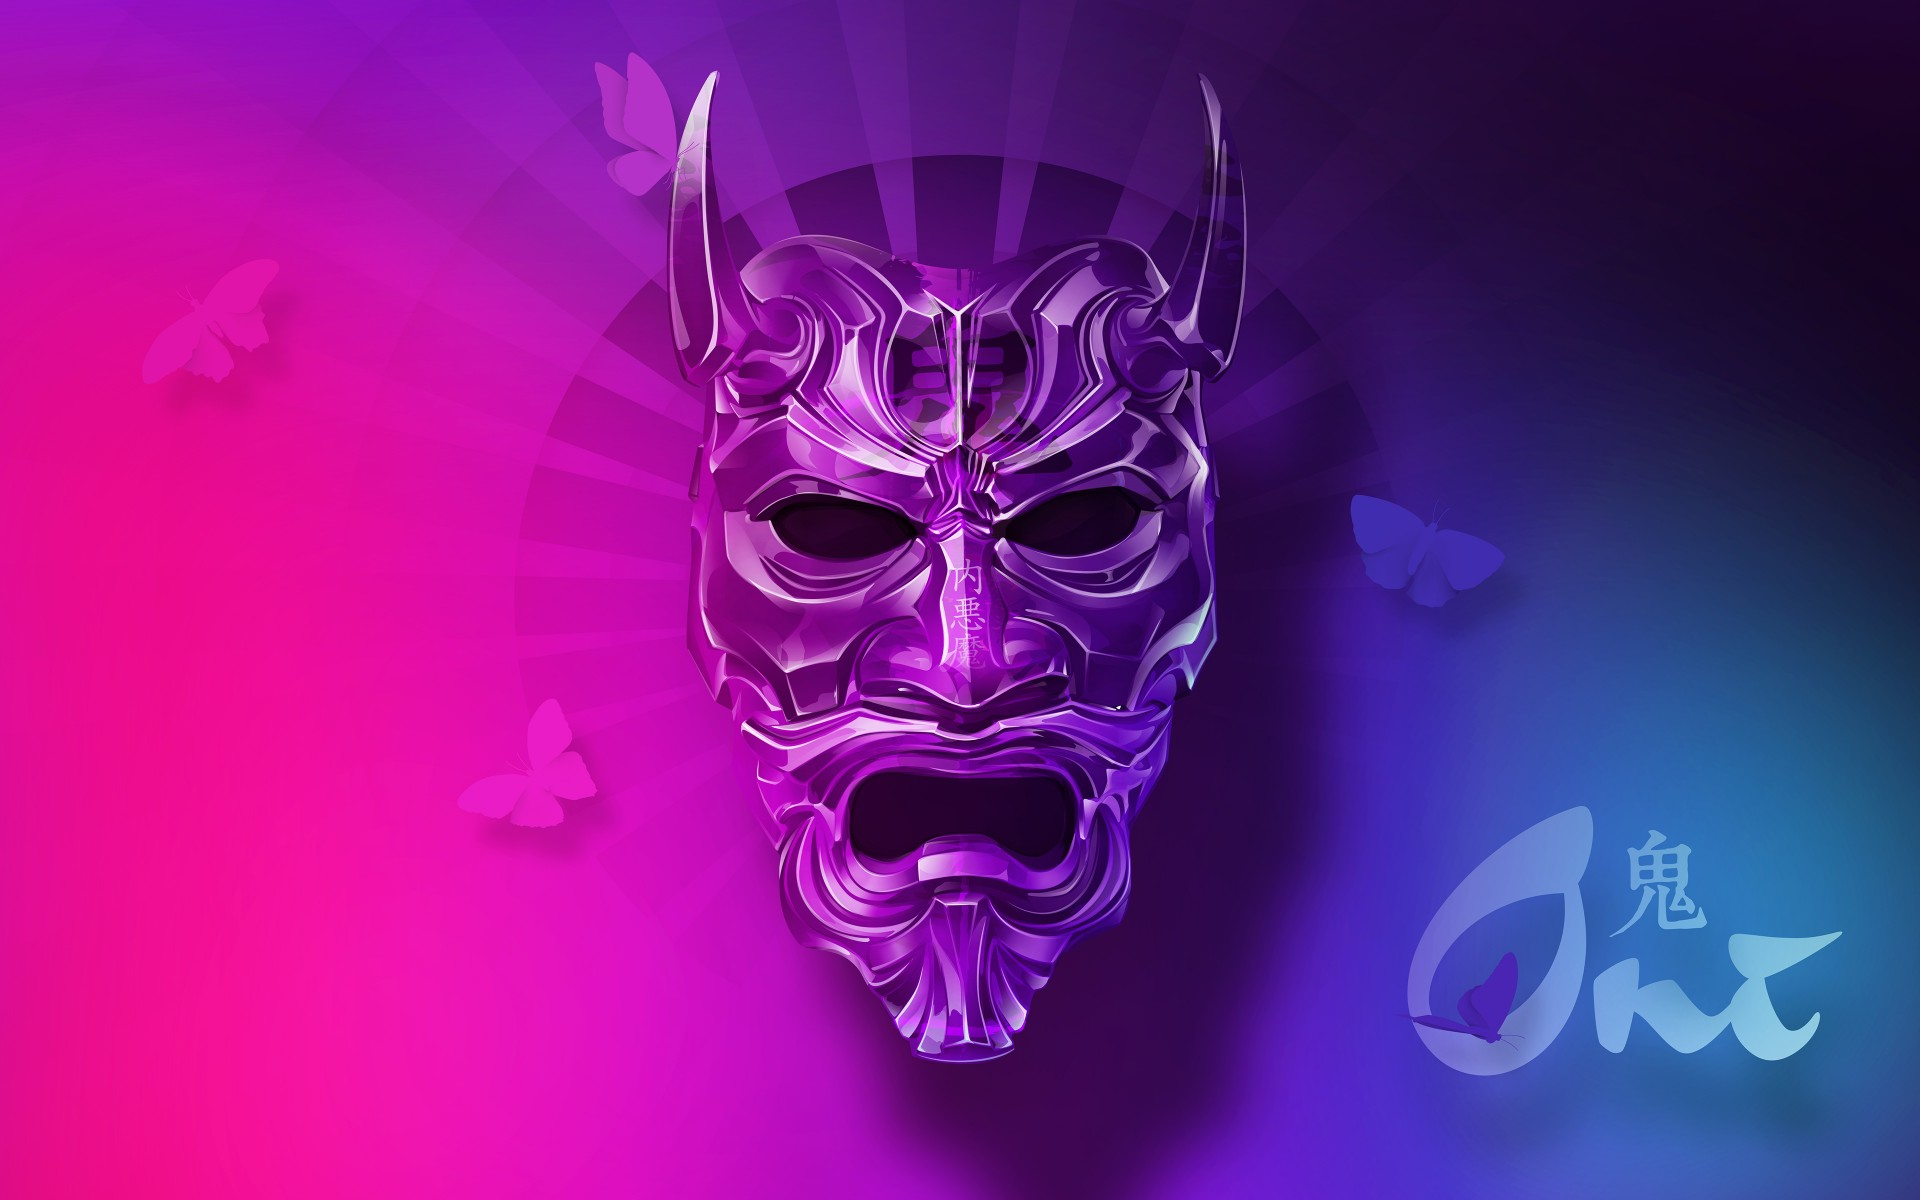 Cool 3d Ipad Wallpapers Oni Mask 4k Wallpapers Hd Wallpapers Id 21913